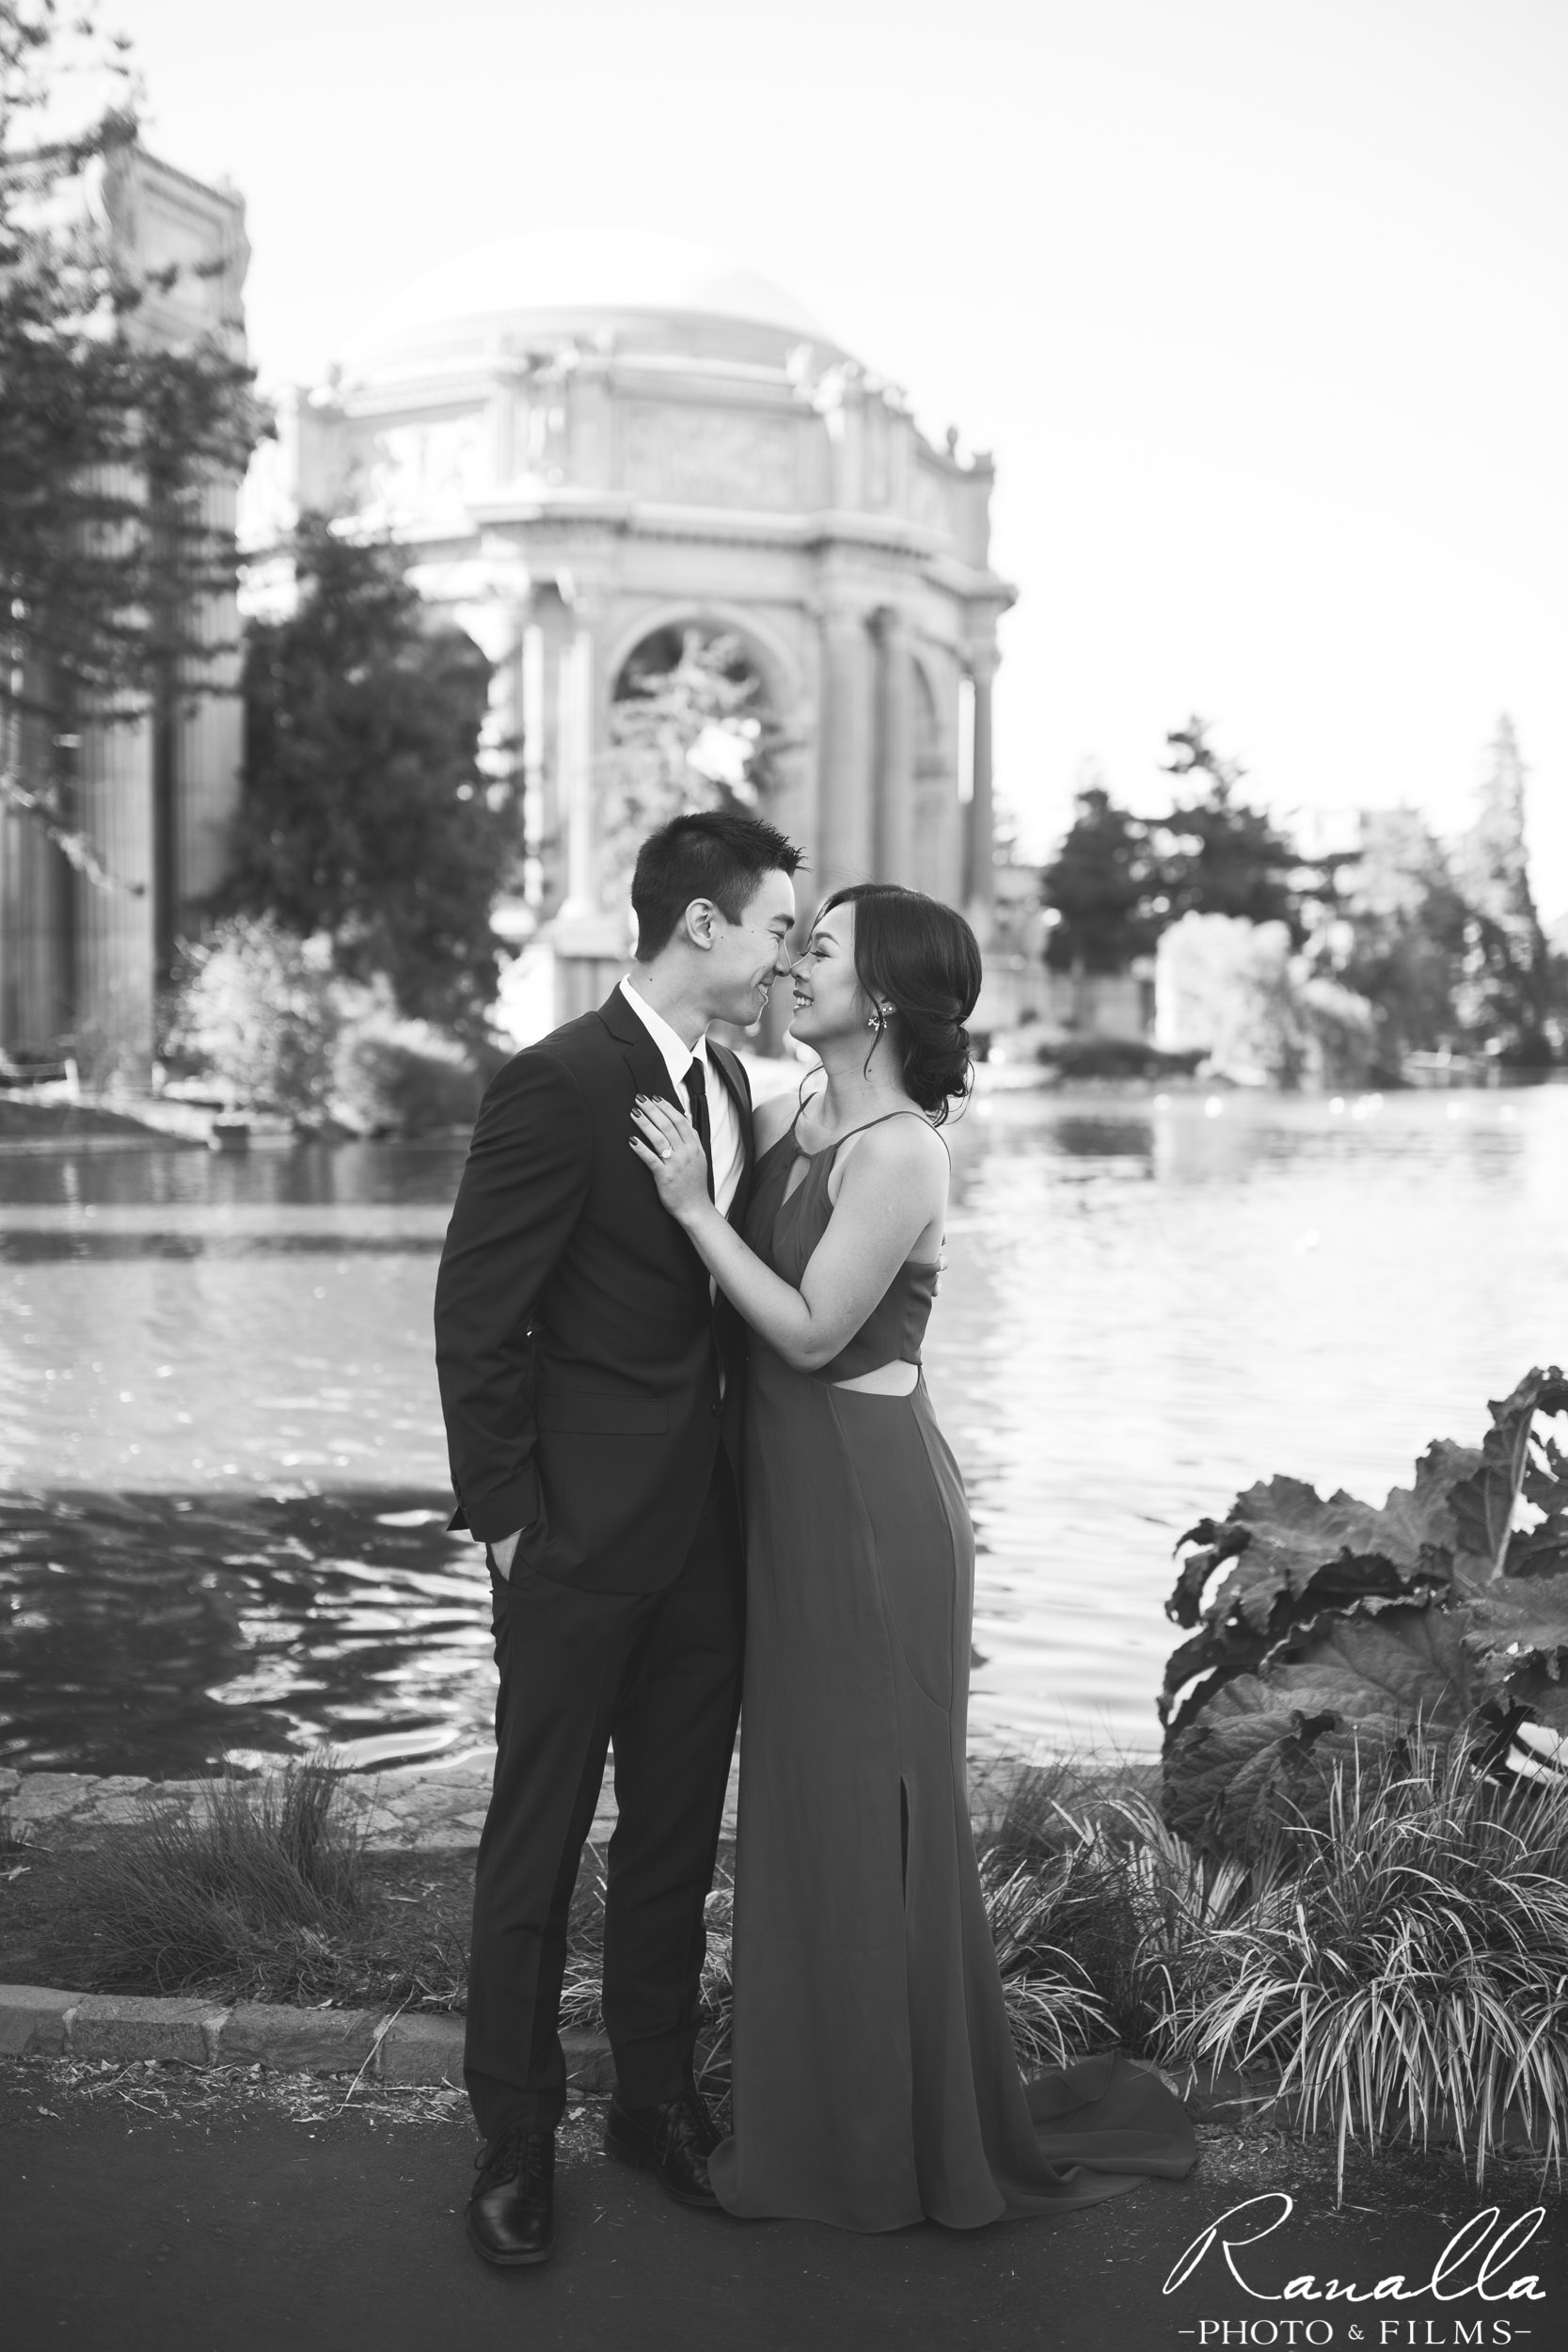 San Francisco Engagement Photography- Palace of Fine Arts- Wedding Photos- Ranalla Photo & Films